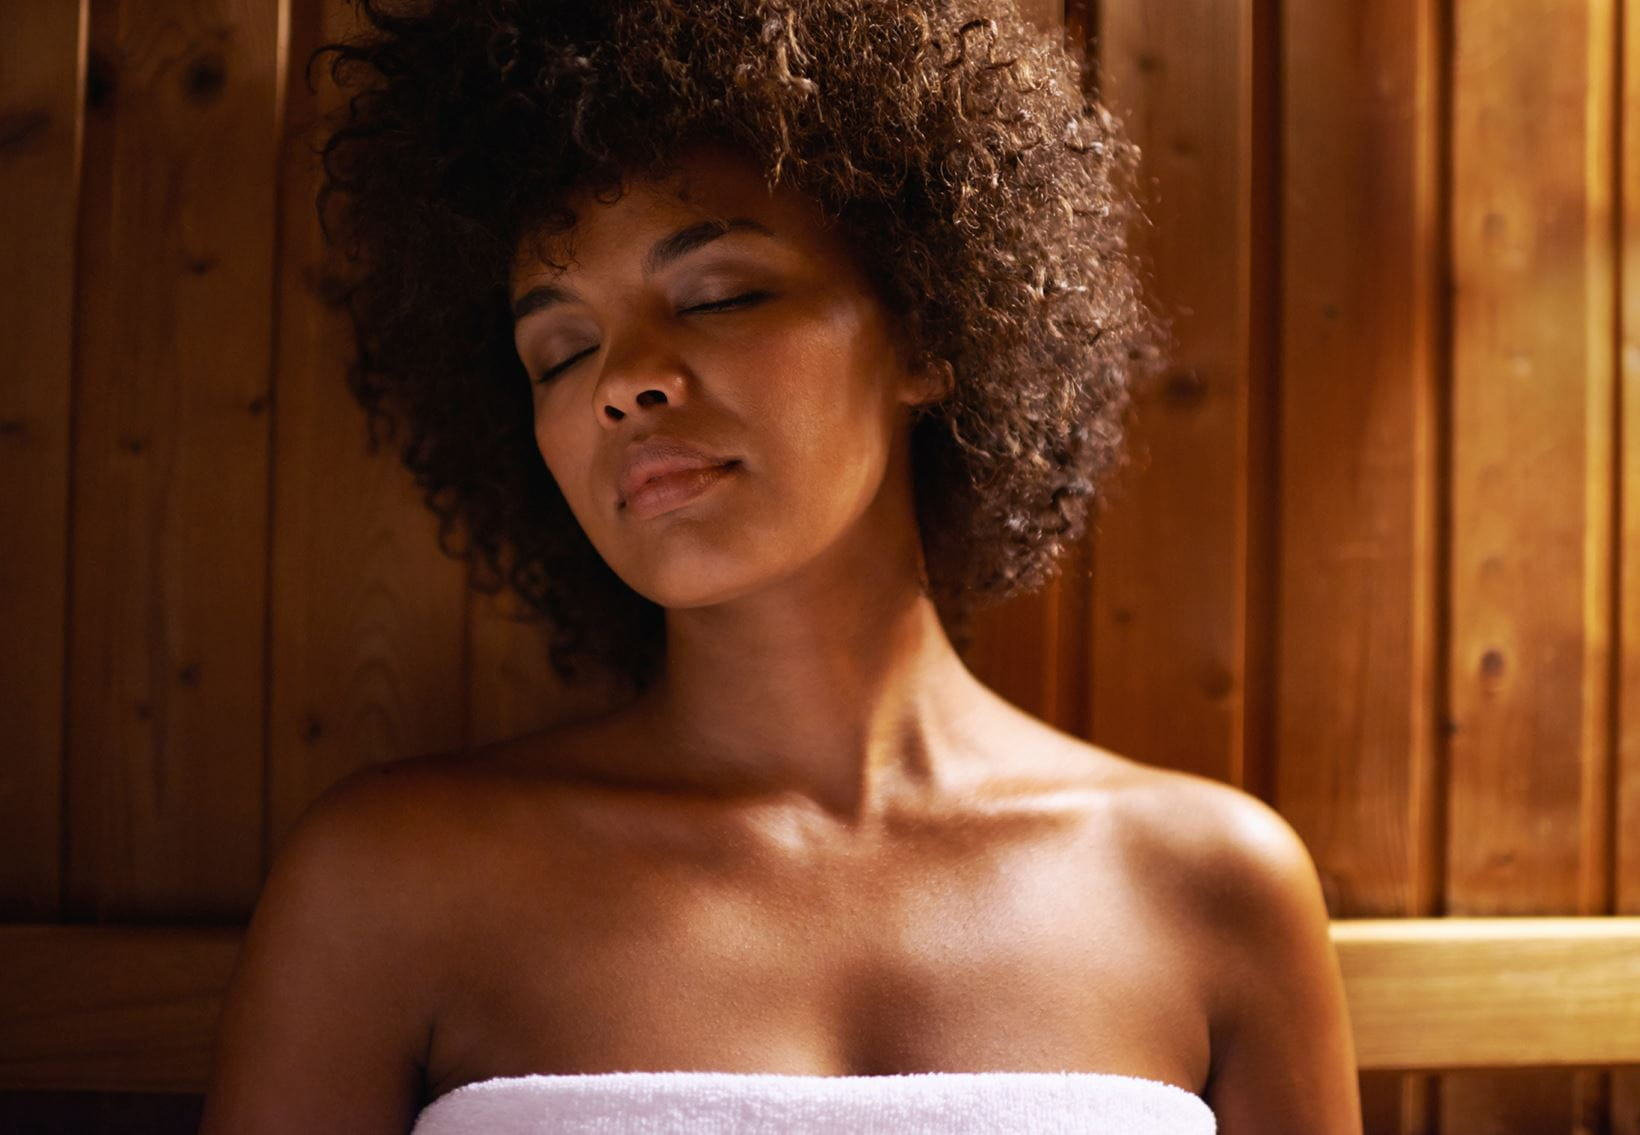 woman in sauna excessive sweating